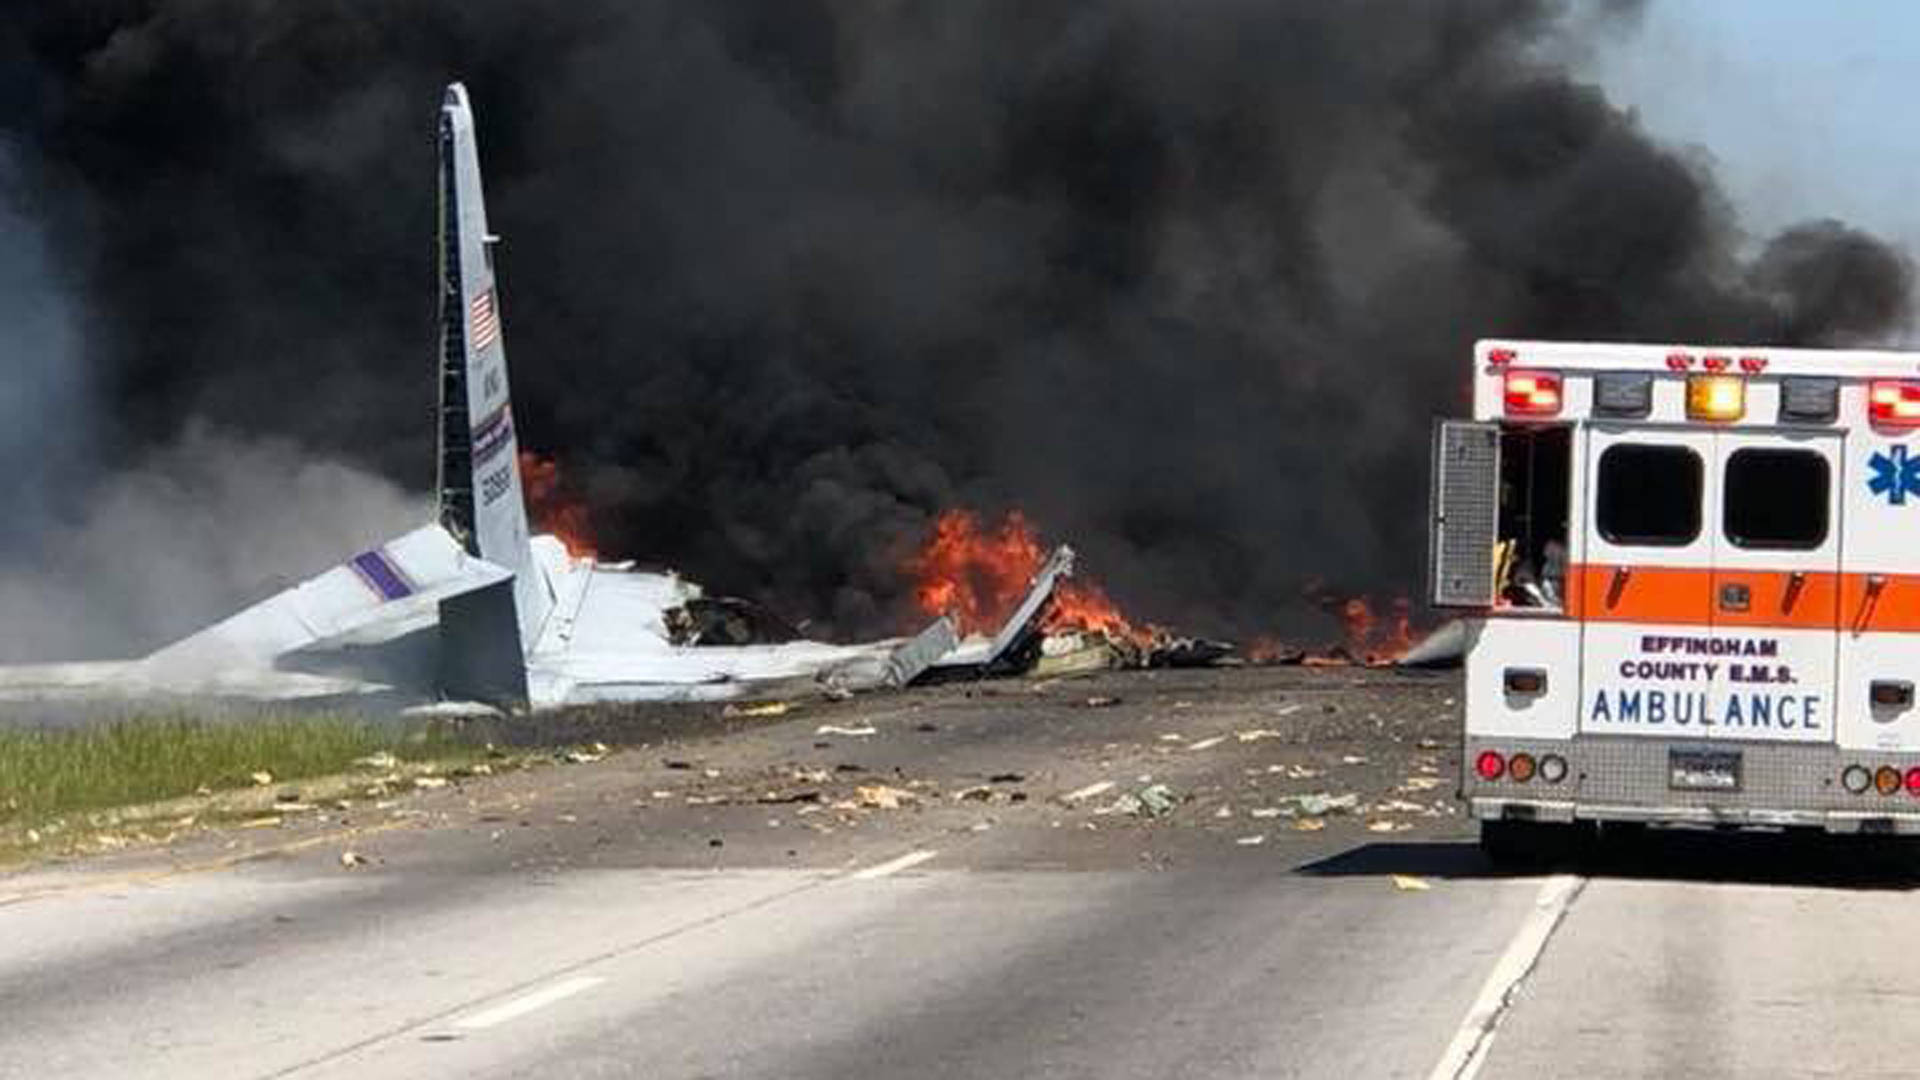 A military plane crashed in Savanah, Georgia on May 2, 2018. (Credit: Savannah Professional Firefighters Association via Twitter)